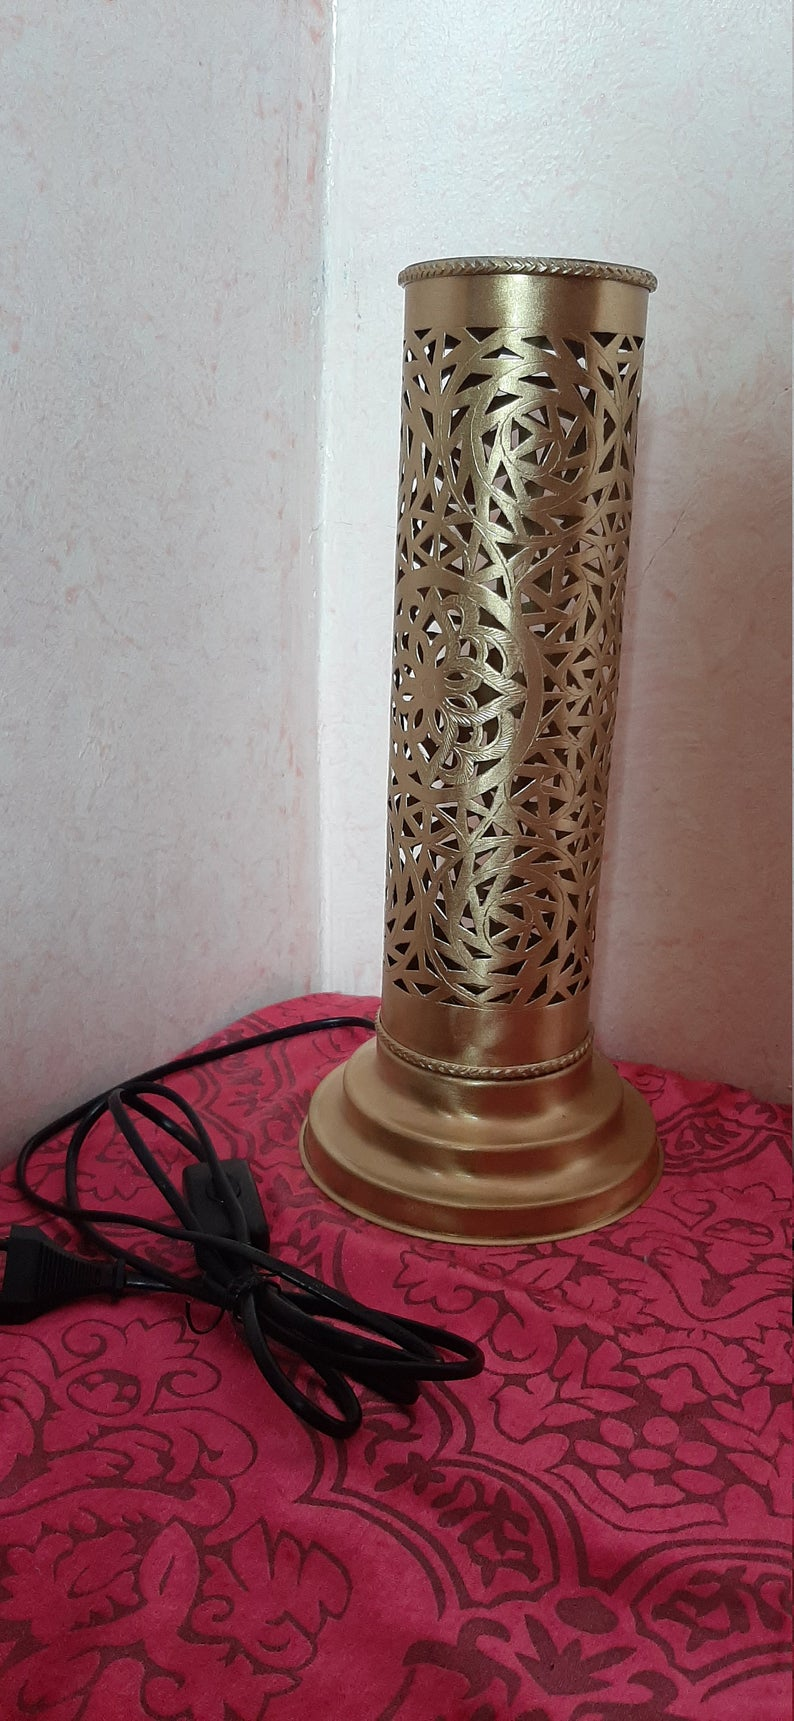 Set of 2 table lamps, Moroccan table lamps, desk lamp, bedside lamp, floor lamp, Moroccan lighting/ Ready to ship.